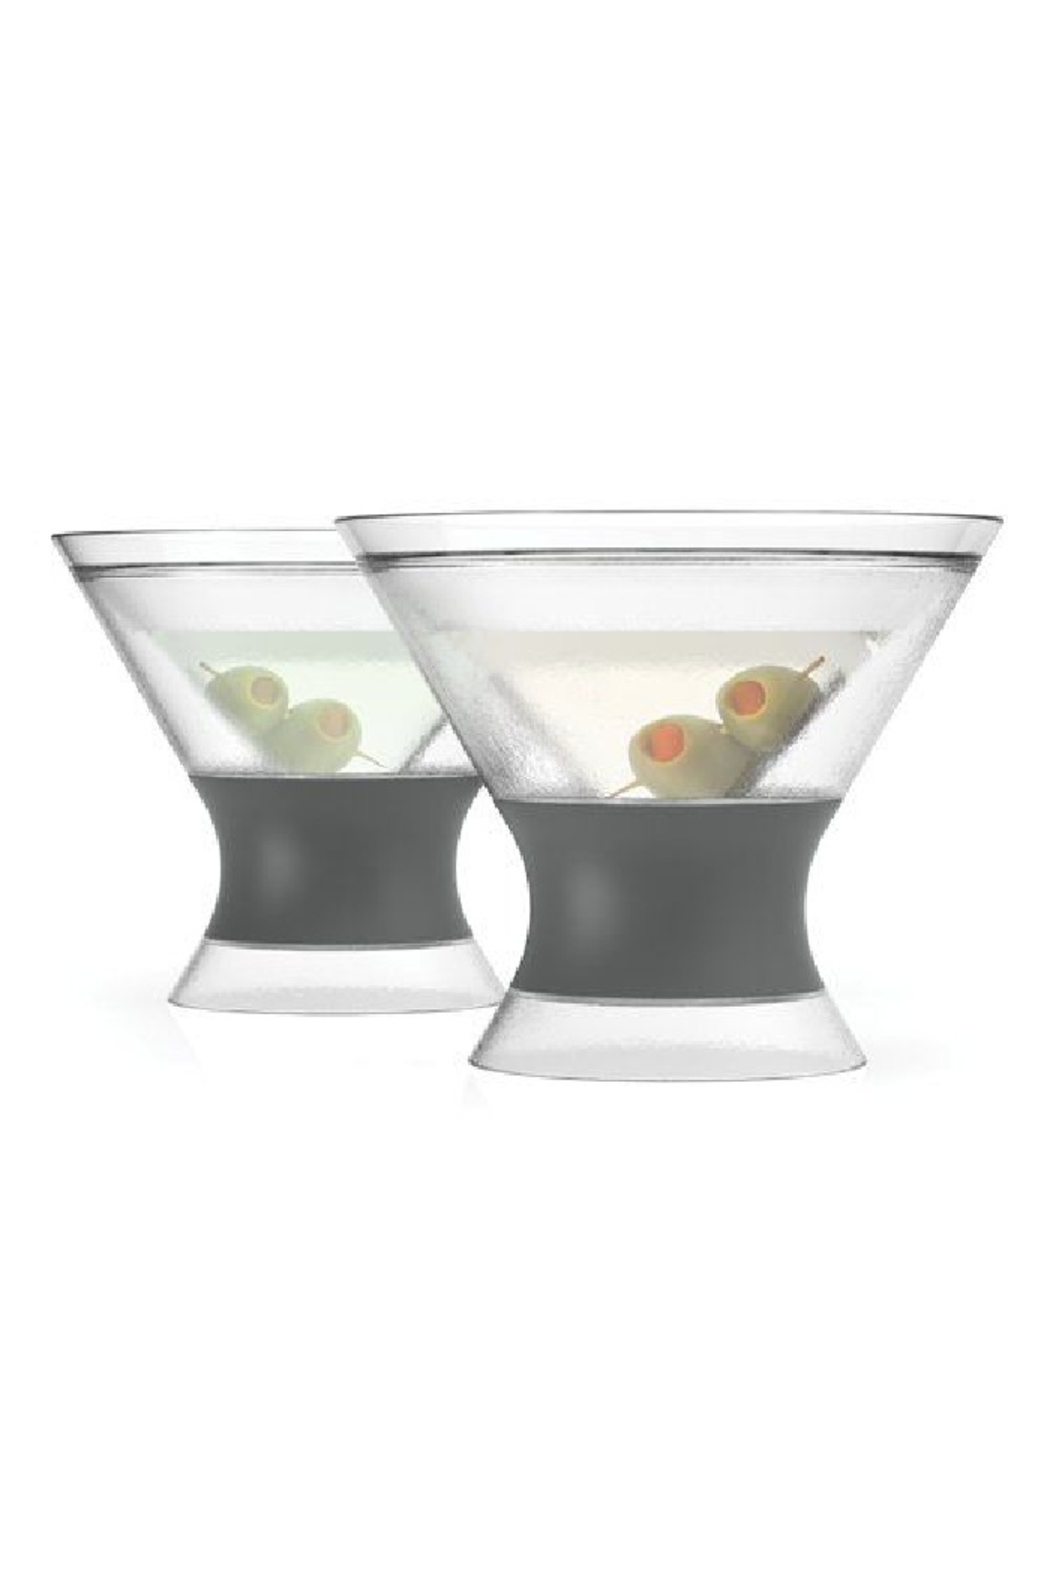 True Brands MARTINI FREEZECOOLING CUPS - Main Image